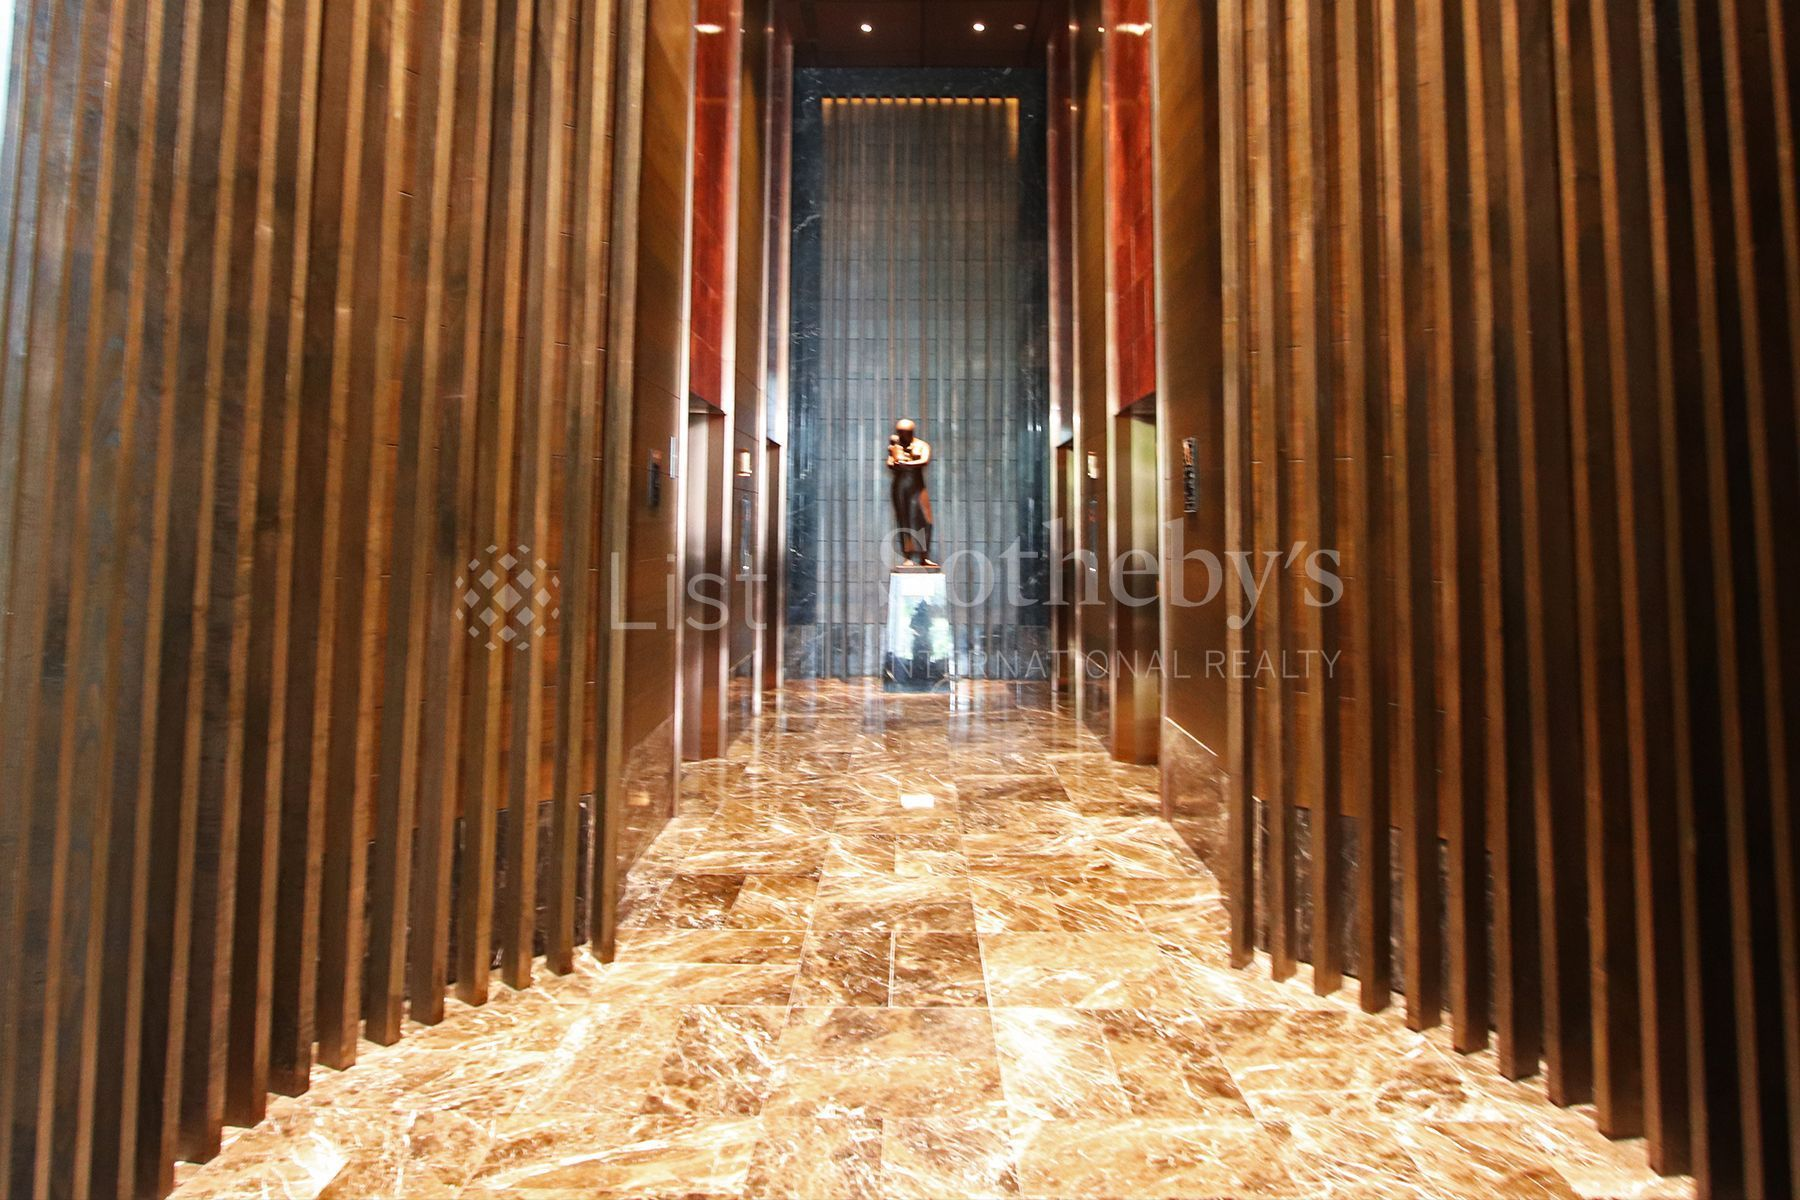 the-pillars-executive-one-bedroom-137-pillars-suites-residences-bangkok 20